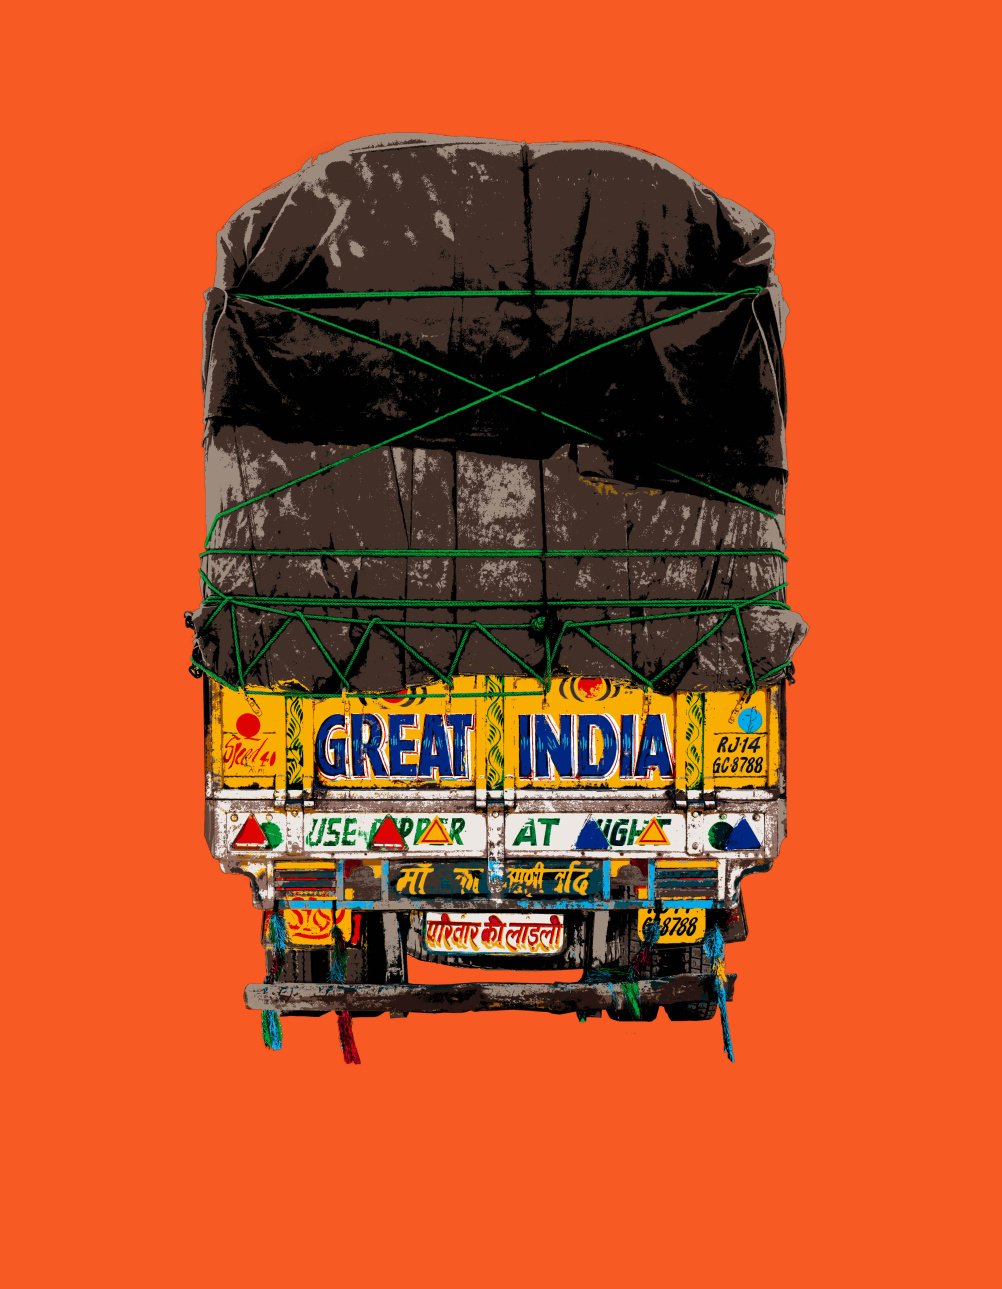 Natasha Kumar print, Great India